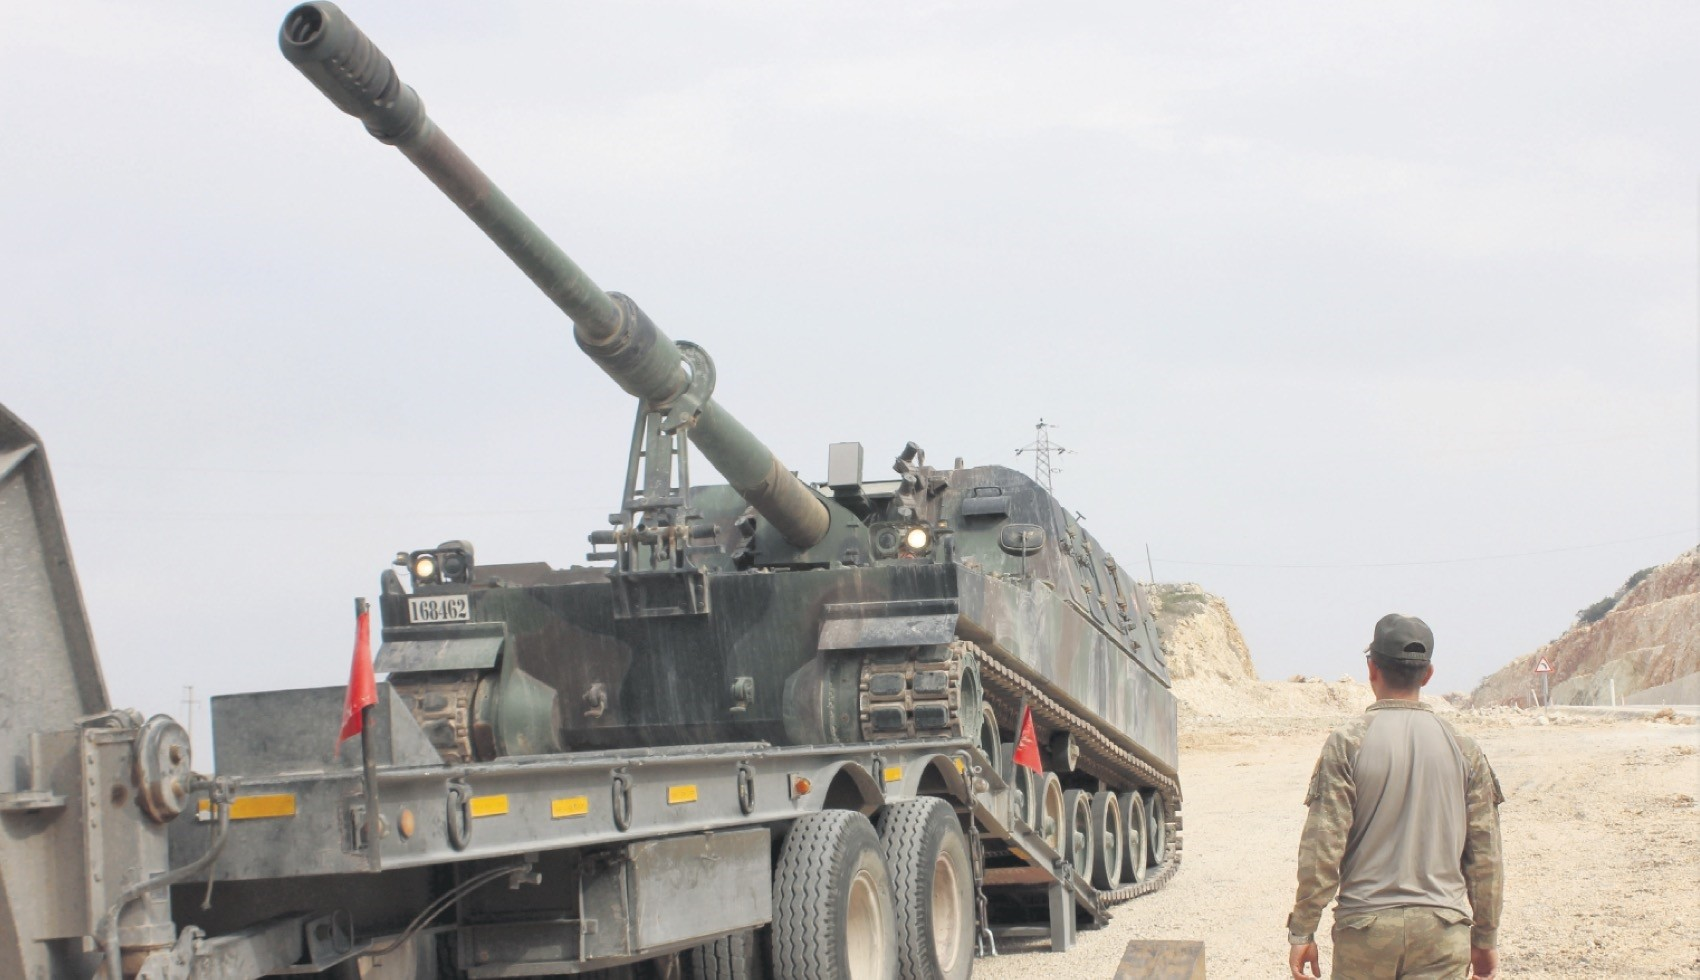 A Turkish soldier oversees a military vehicle being loaded onto a truck before it heads to one of the 12 Turkish observation points in Idlib, northwestern Syria, Sept. 13.